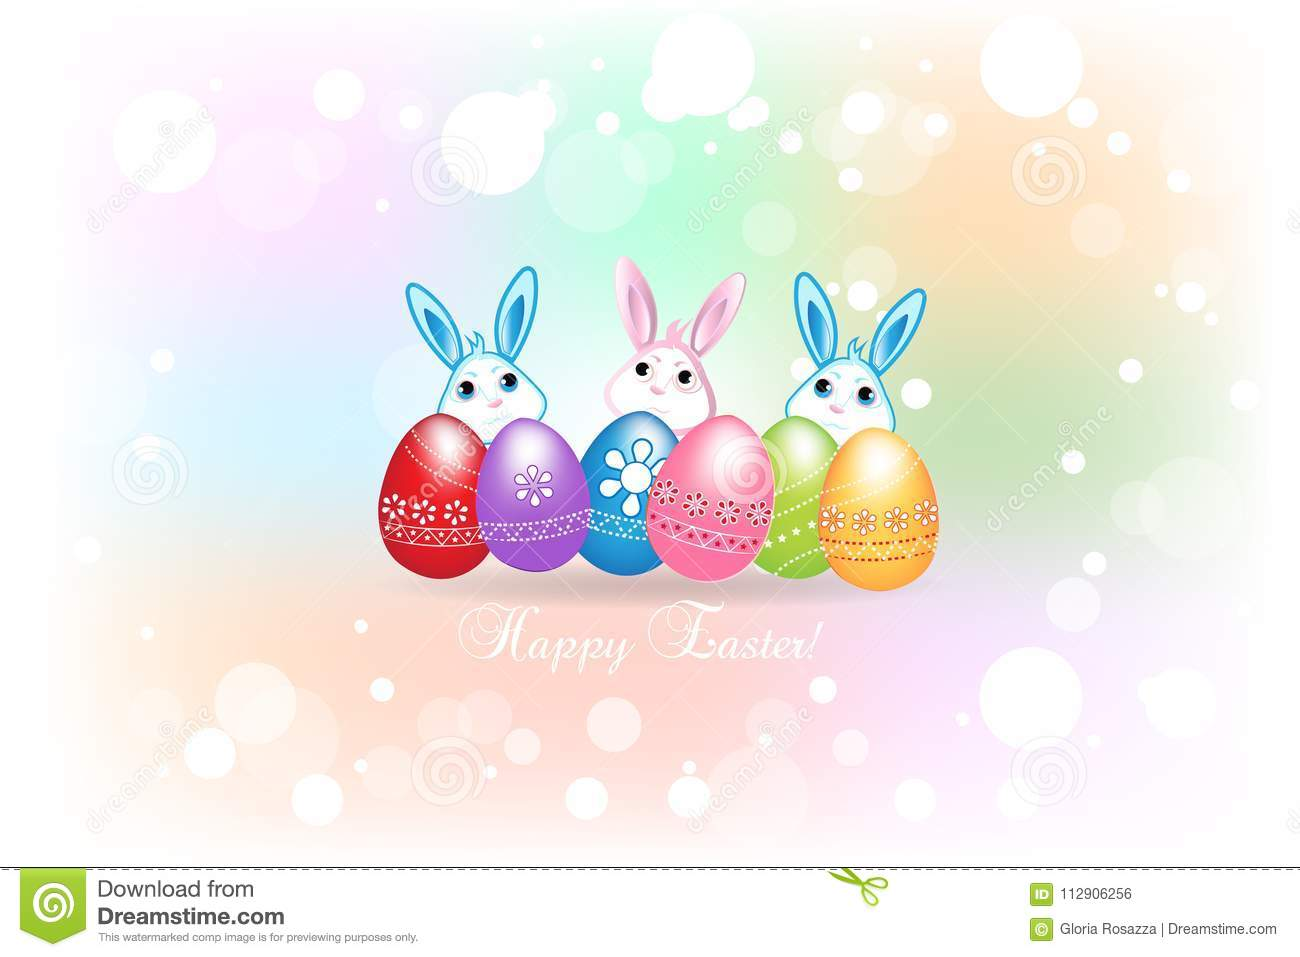 Happy Easter Greetings Card With Eggs And Bunnies Colorful Icon Logo